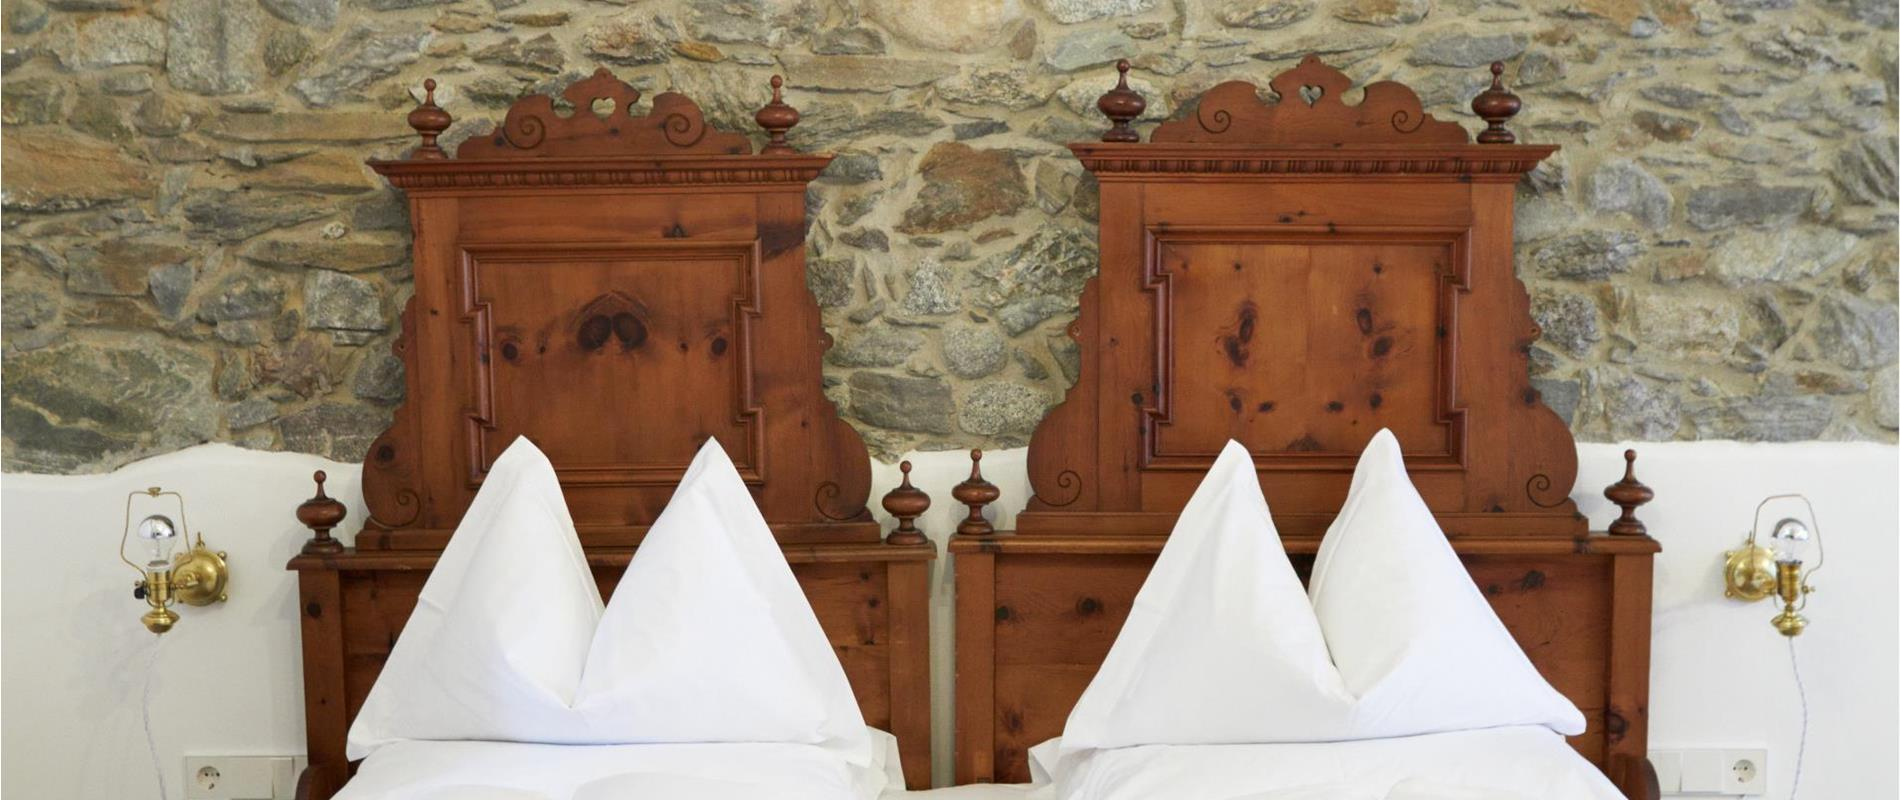 Holidays in South Tyrol – Search & Book Accommodation